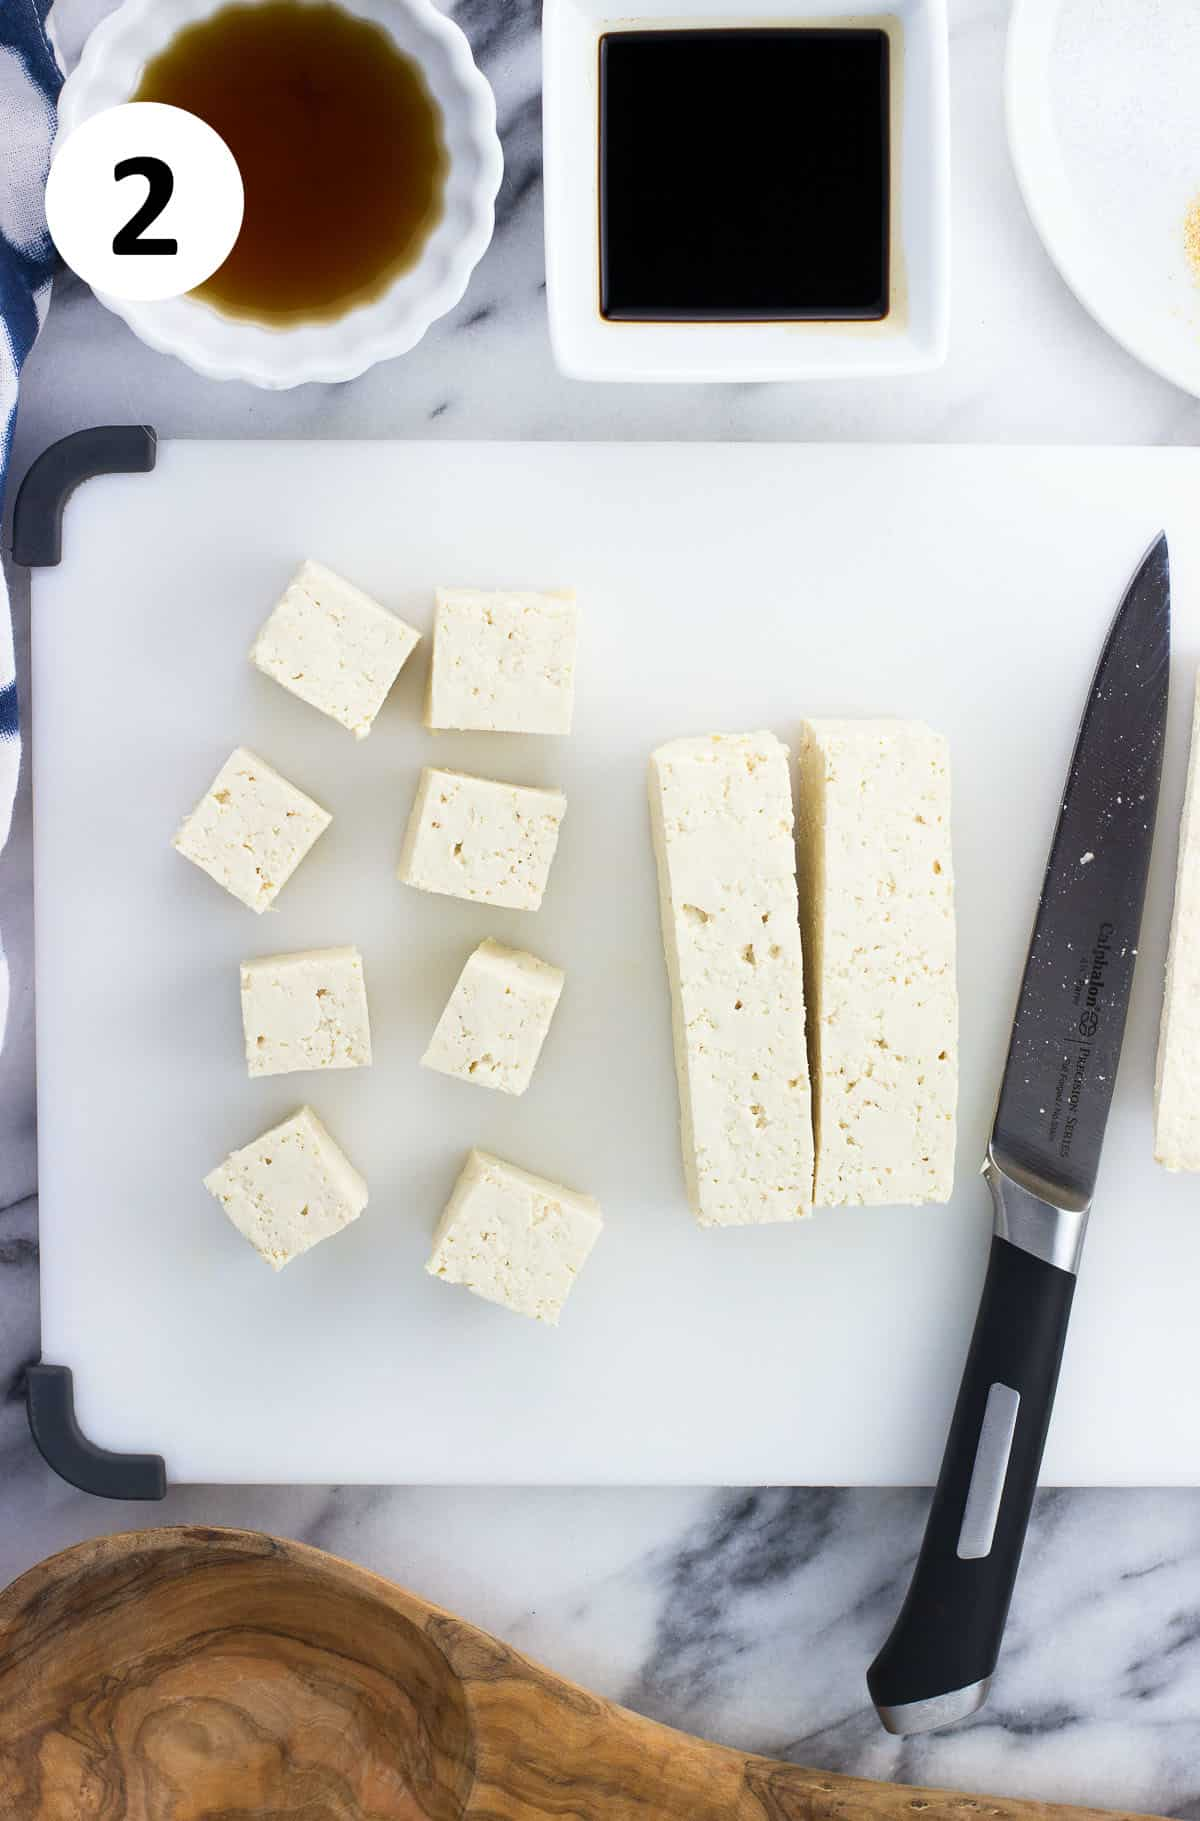 The tofu block being cut into cubes.